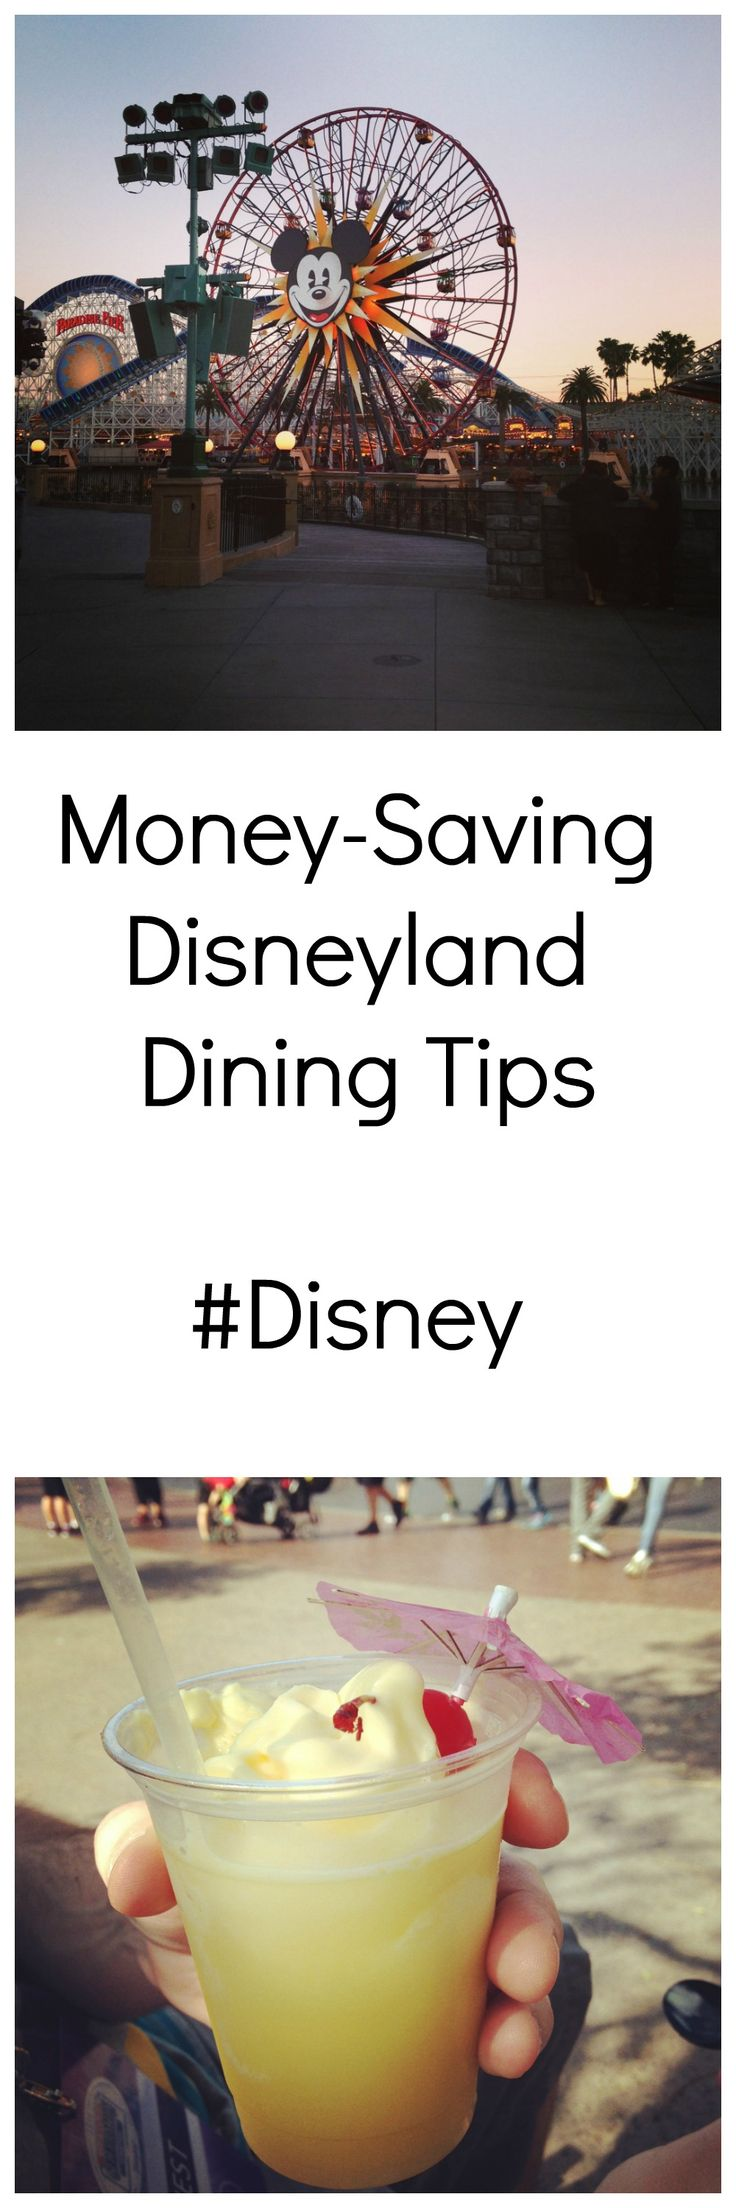 "You CAN eat on a budget at Disneyland! Tried and true tips from a no-frills traveler. Favorite ""cheap"" park restaurants and more money-saving tips! #Disneyland #Disney #DisneyMom #travel"